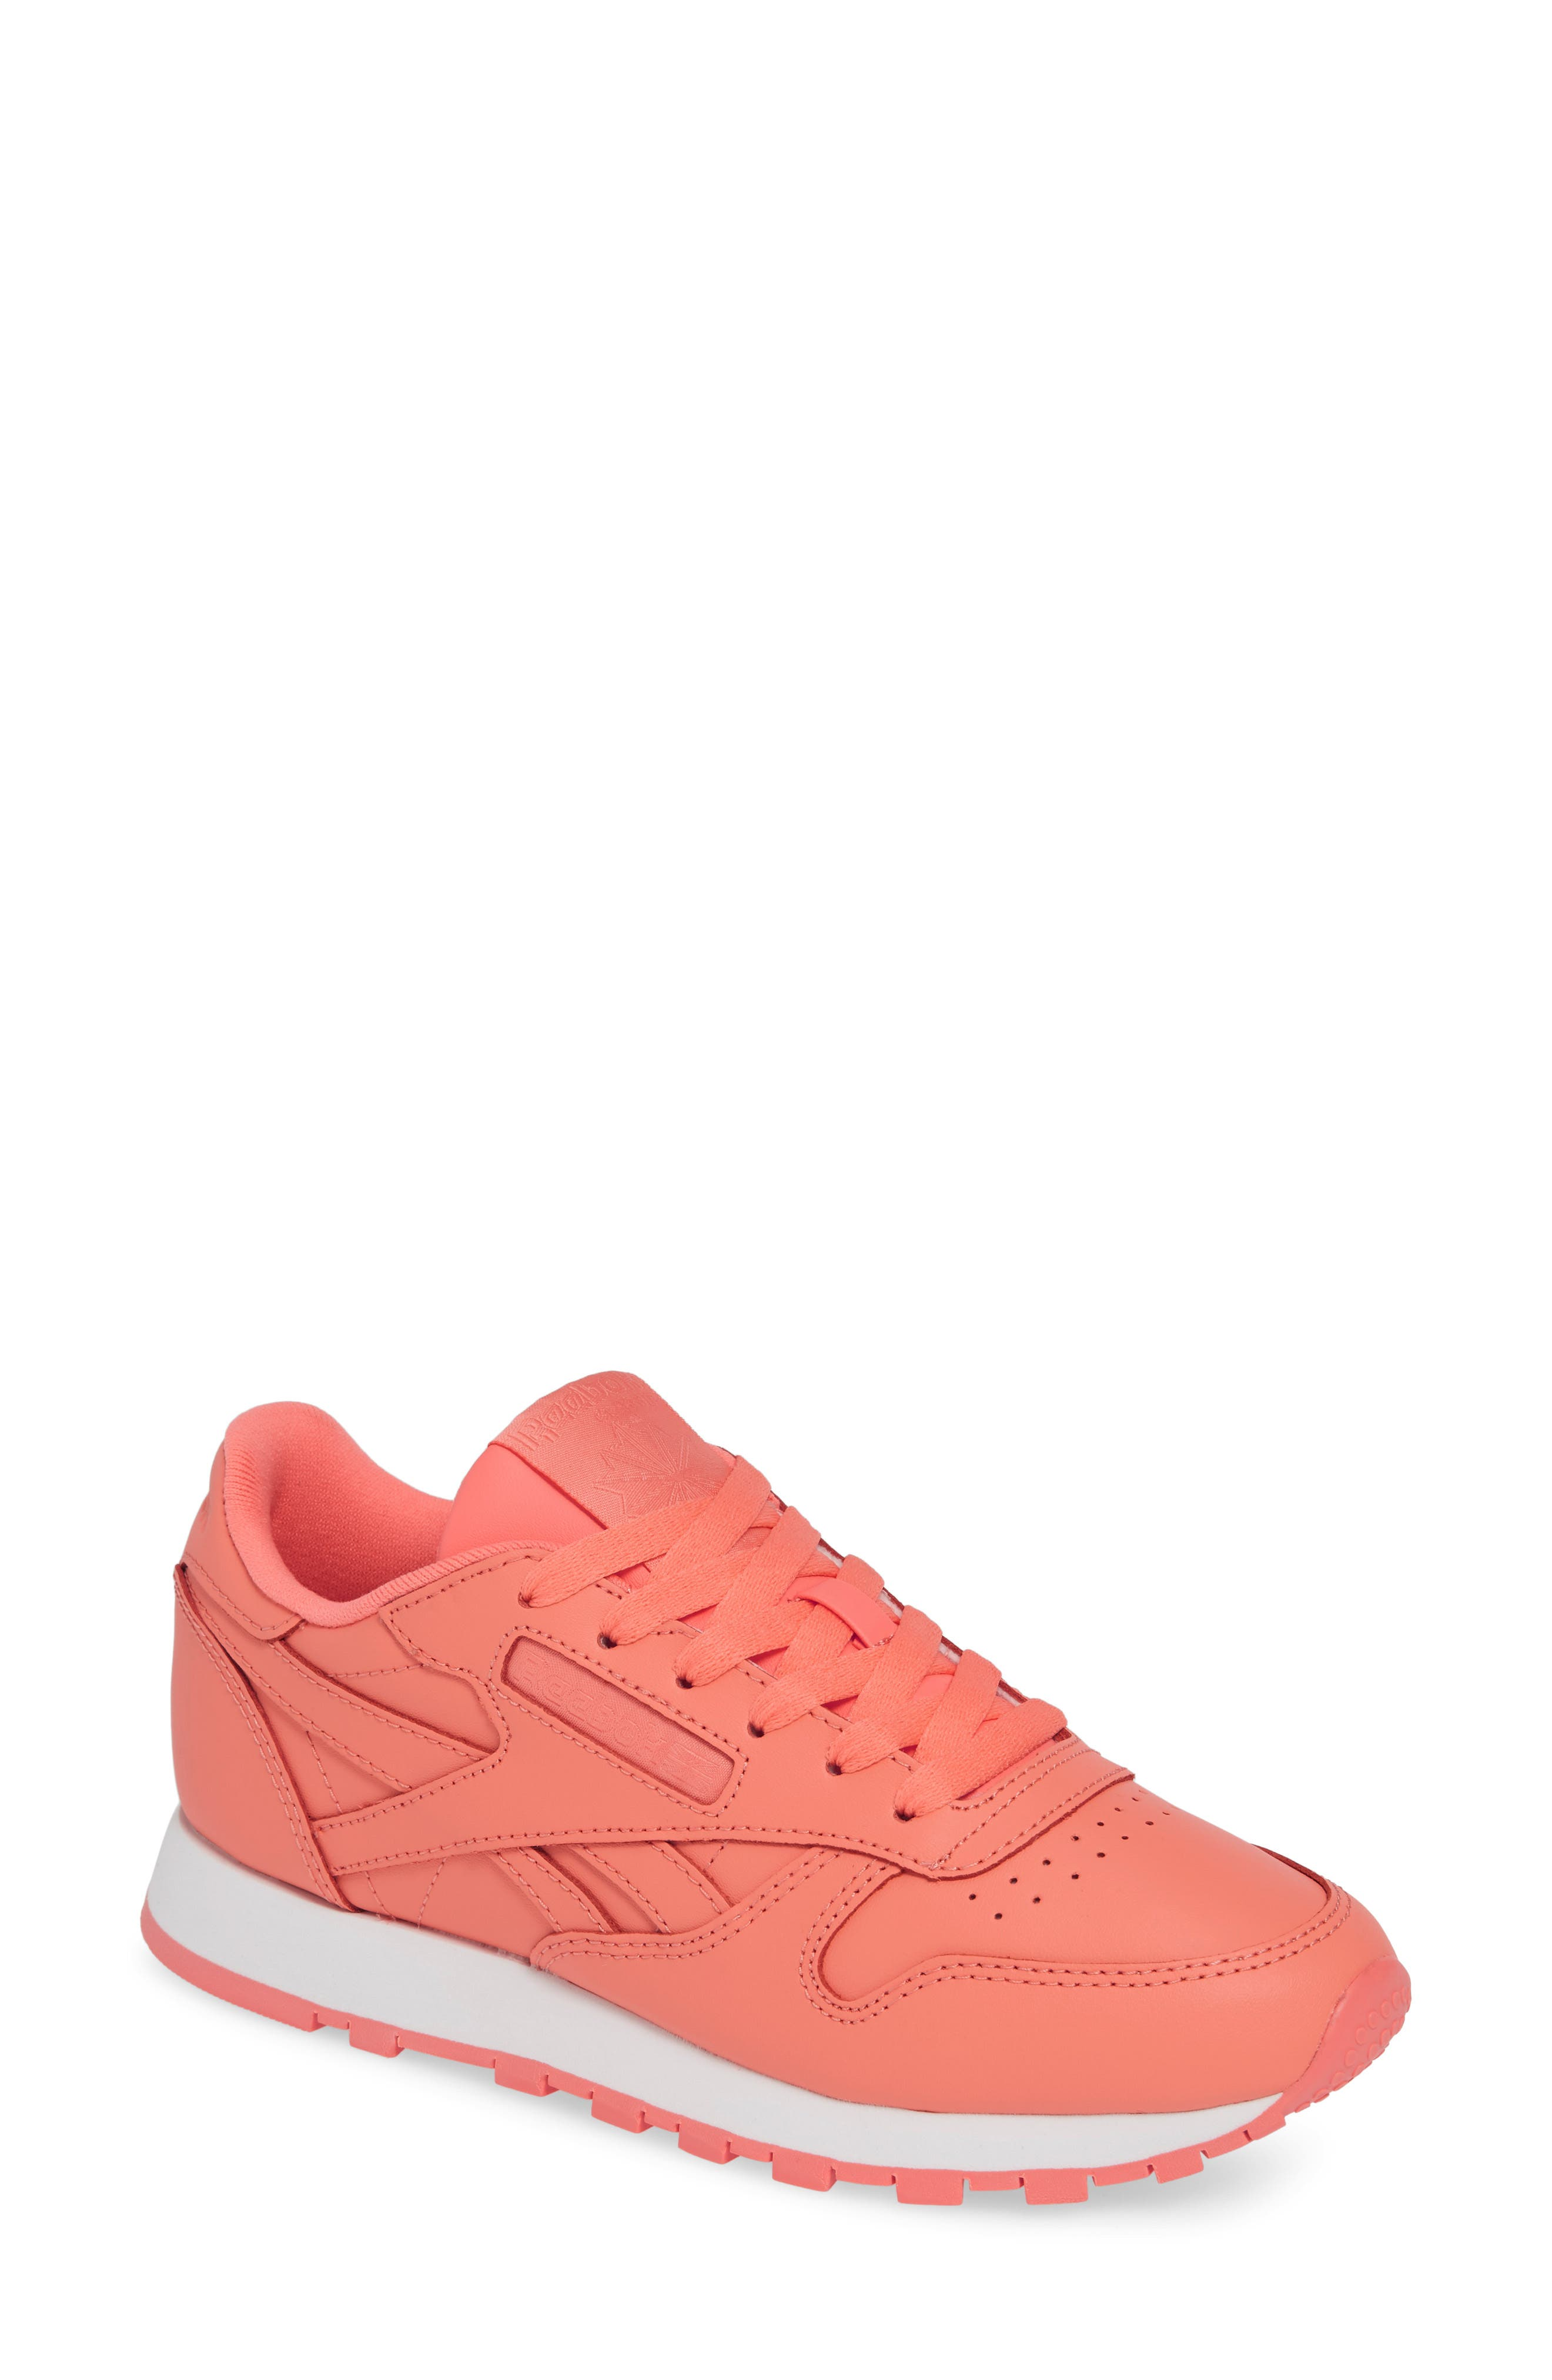 Reebok Classic Leather Sneaker- Coral